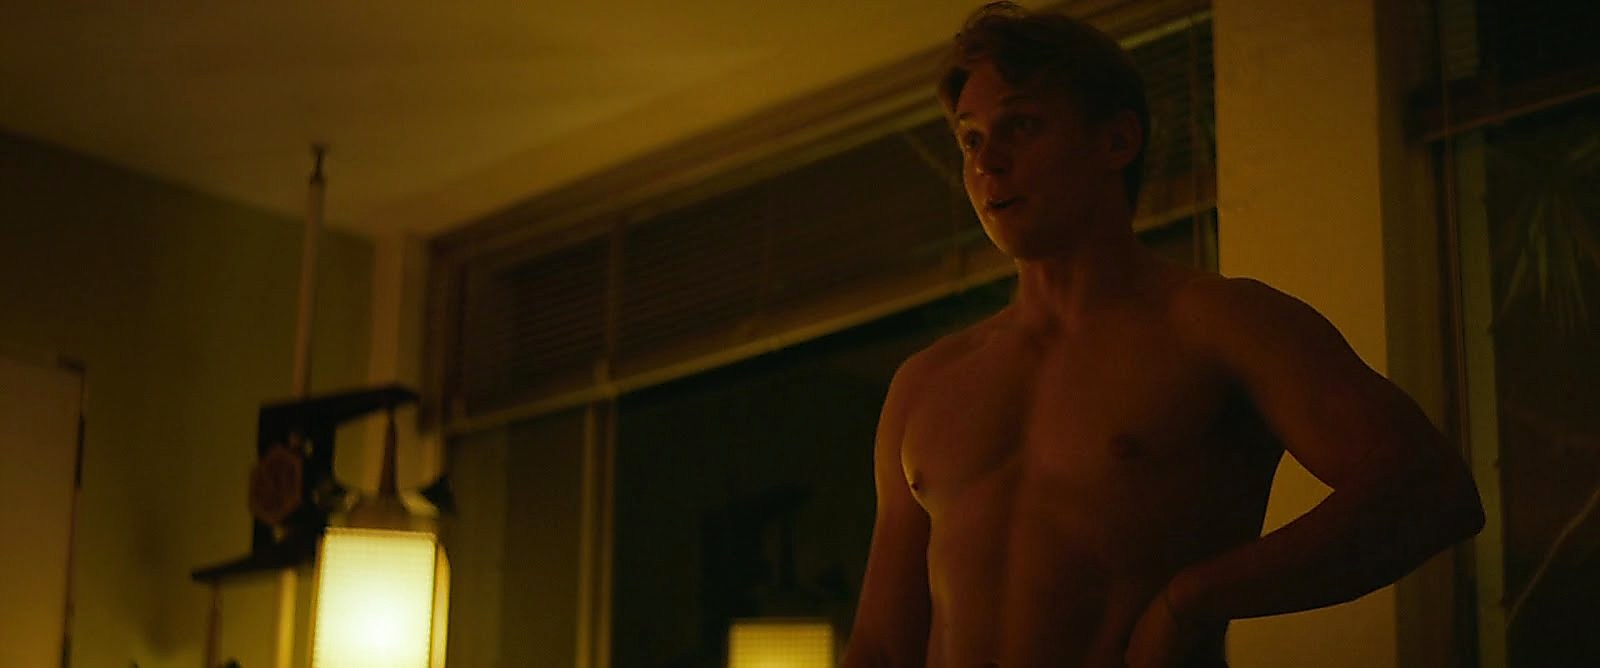 Billy Magnussen latest sexy shirtless scene October 24, 2017, 1pm